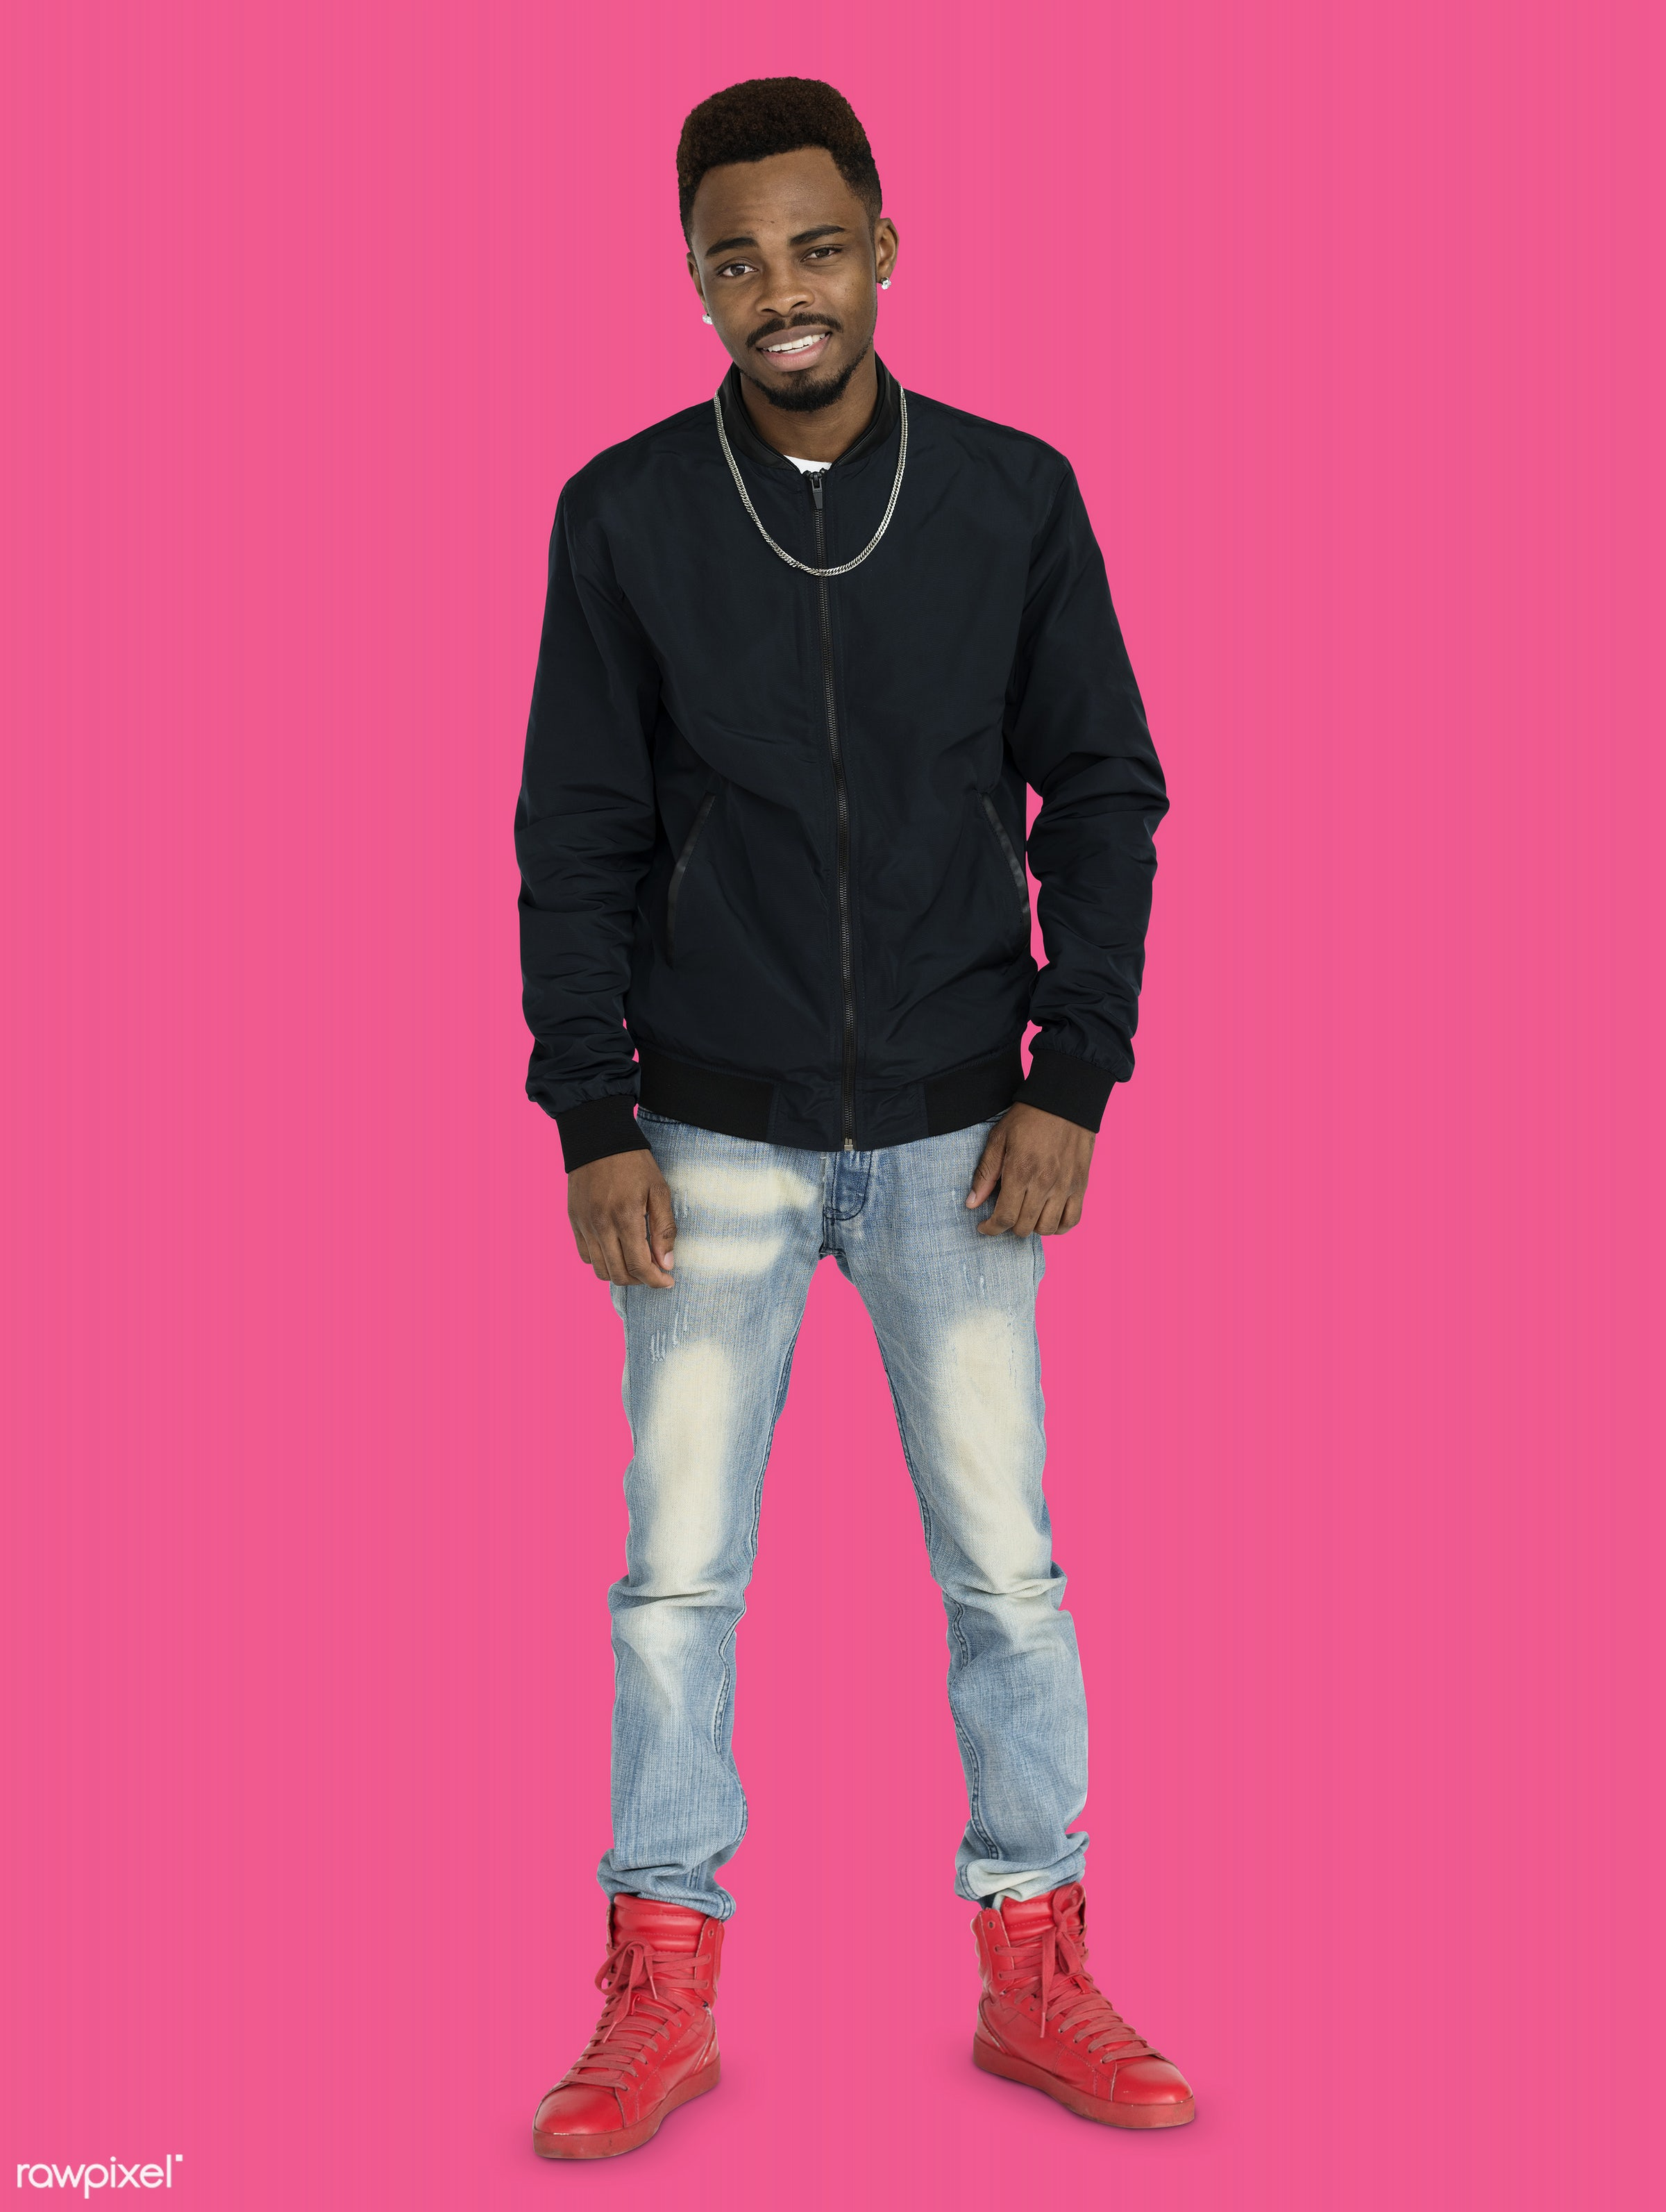 studio, expression, face, person, joy, people, style, solo, fresh, happy, casual, pink, smile, cheerful, man, smiling, black...